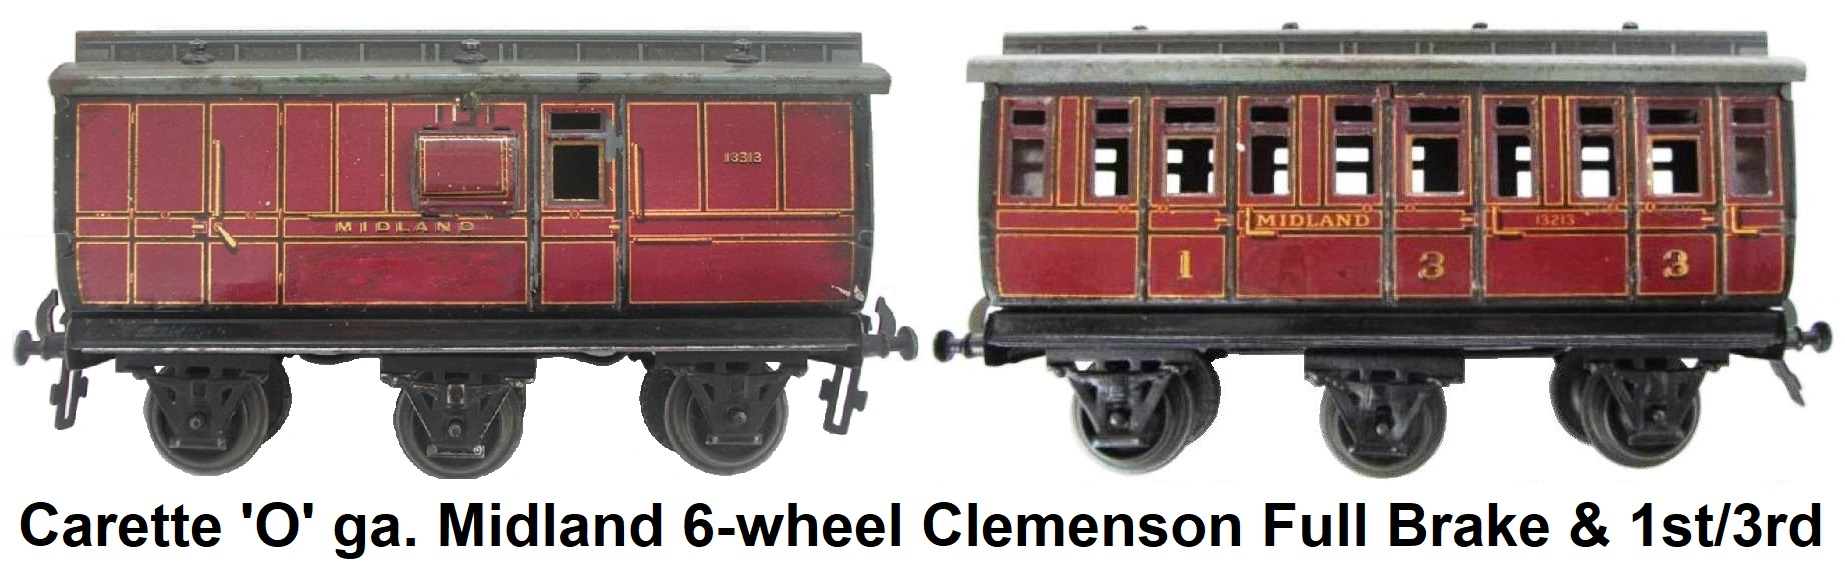 Carette 'O' gauge Midland Railway Clemenson Style 6-wheel Clerestory Roof Full Brake Coach and First Third Passenger Coach